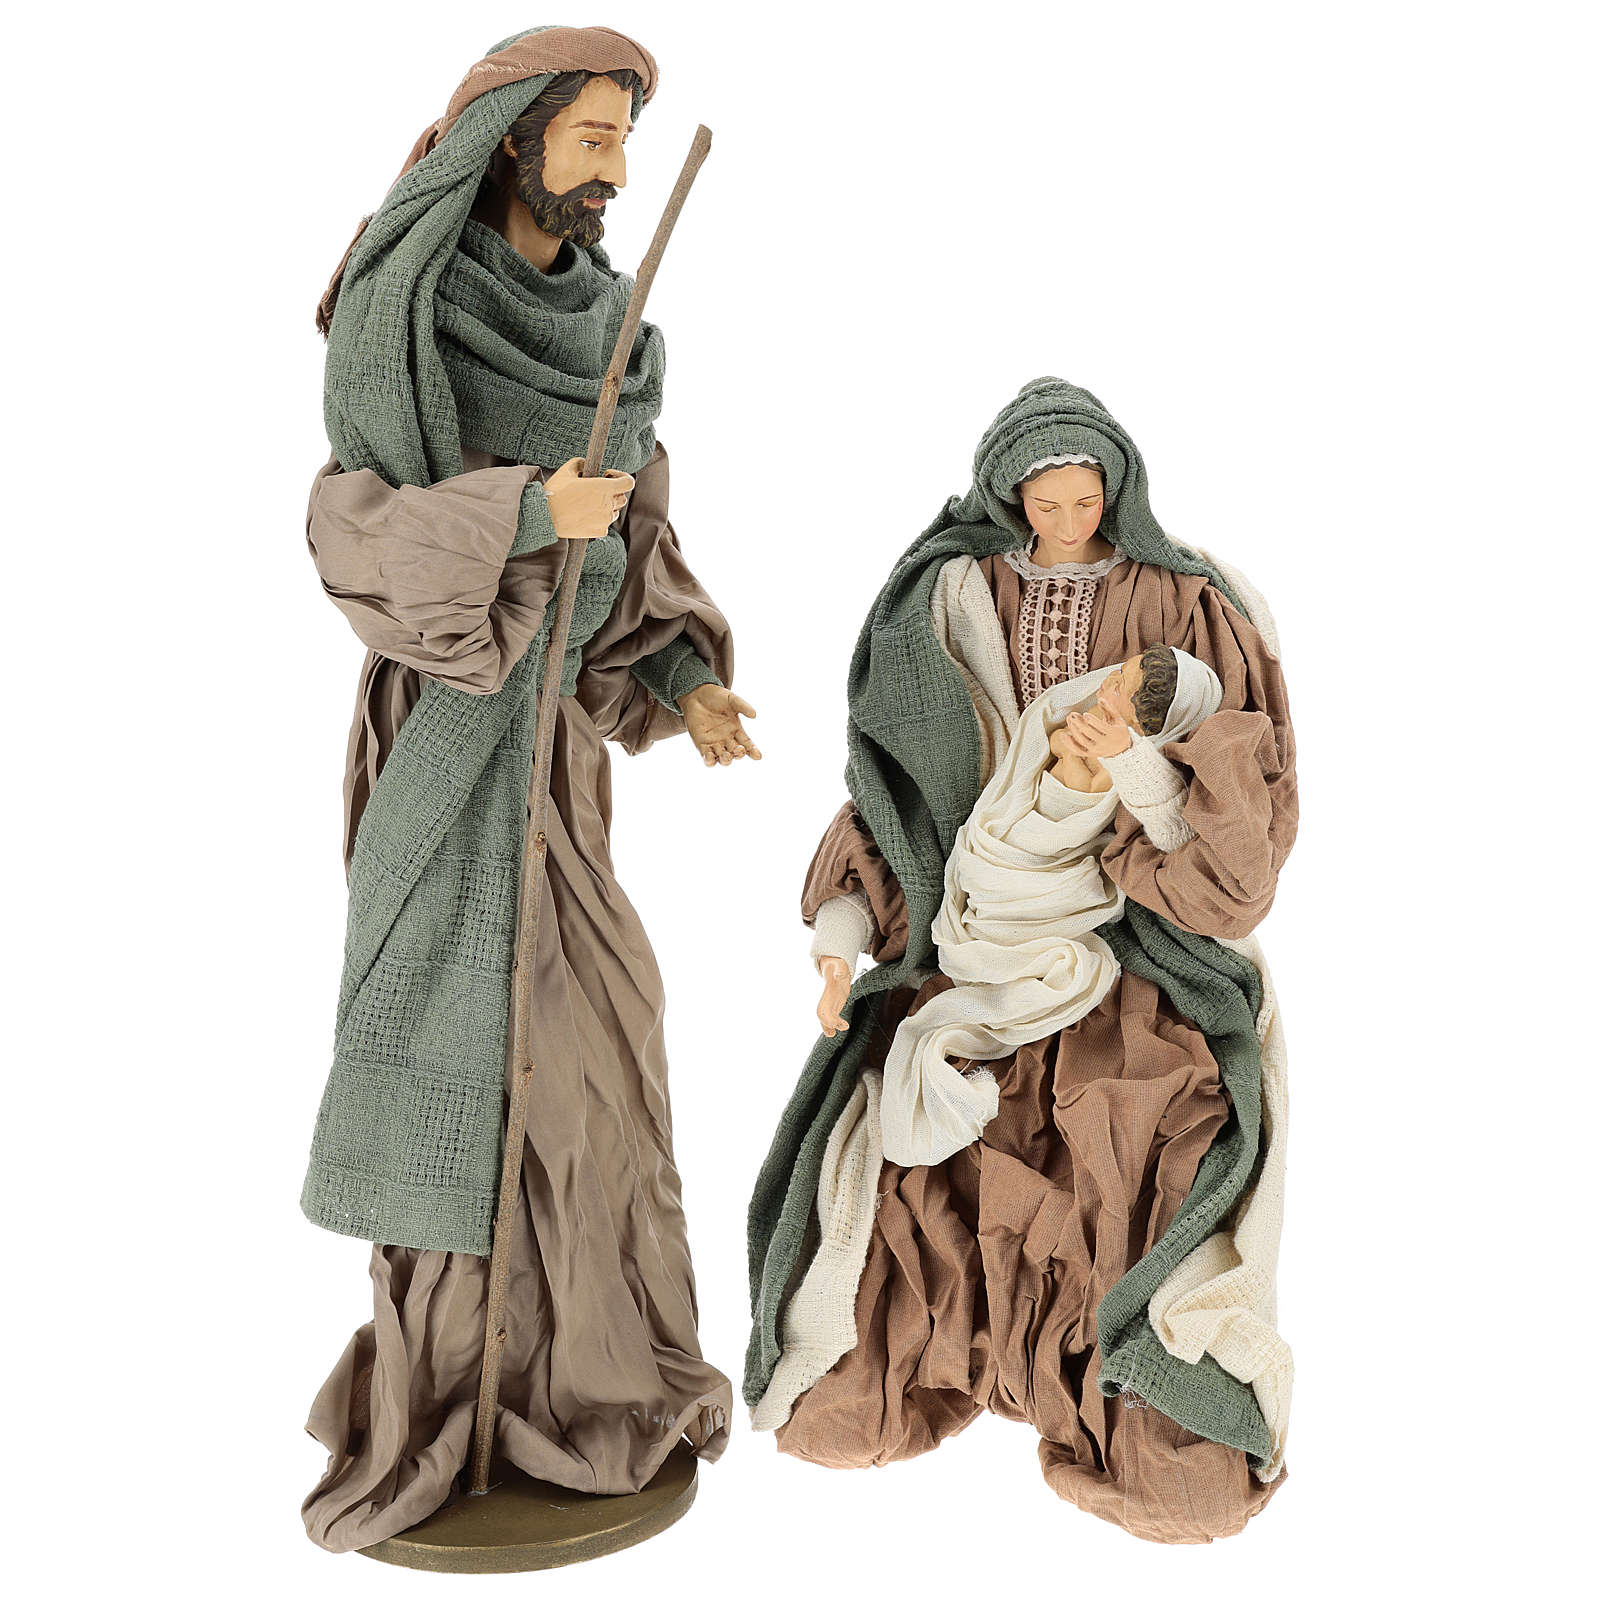 Natività 55 cm in resina garza verde e marrone 3